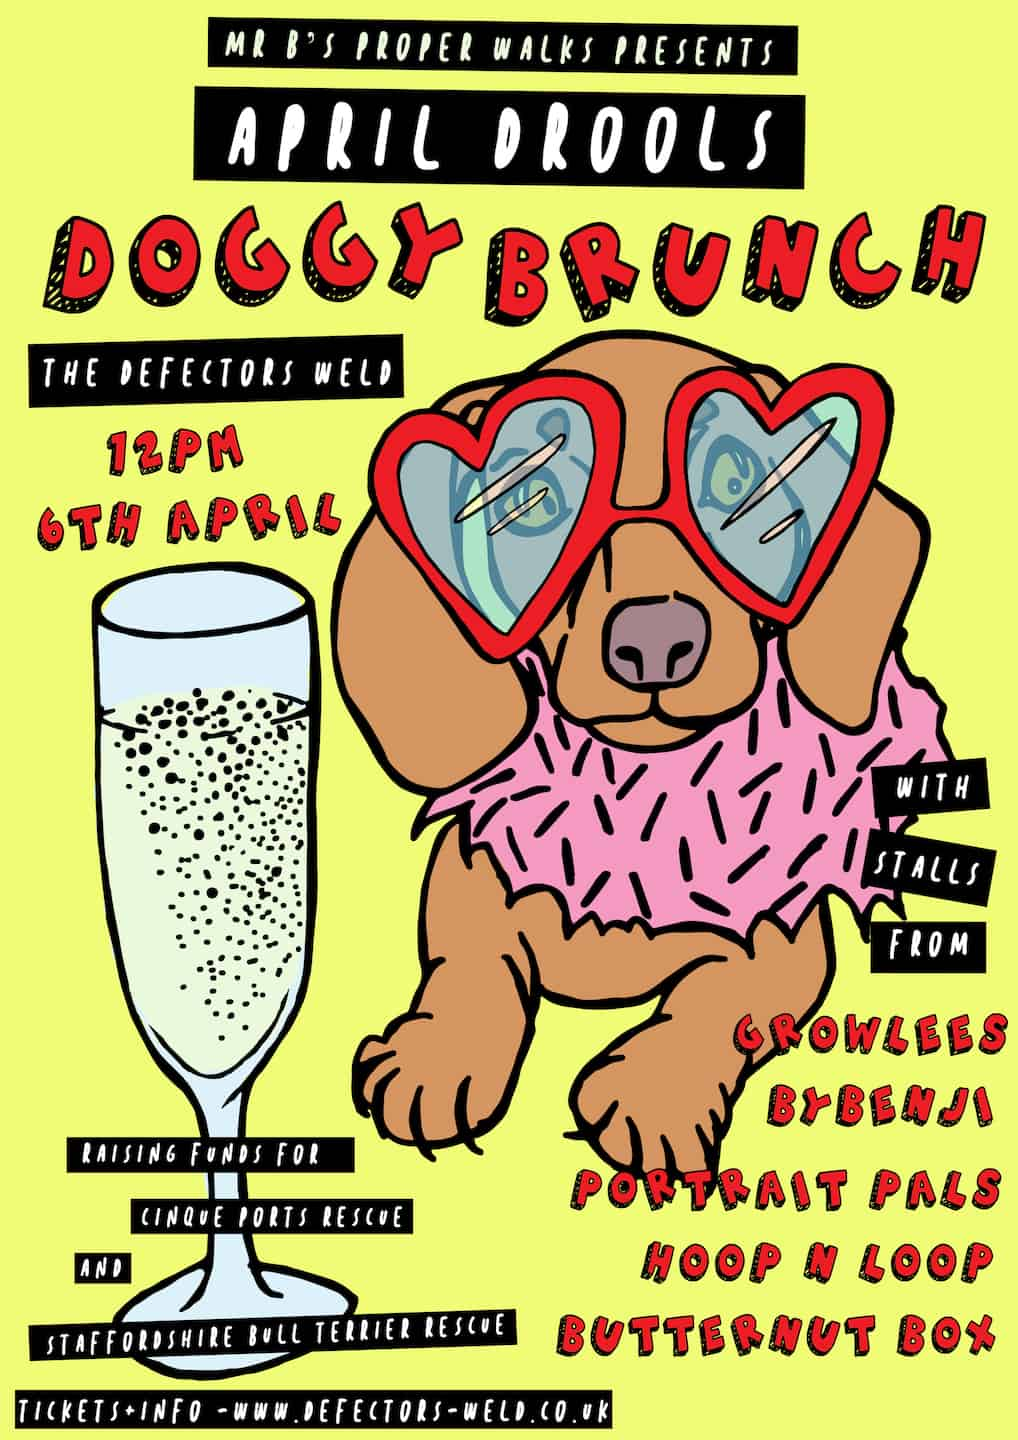 April Drools Dog Brunch